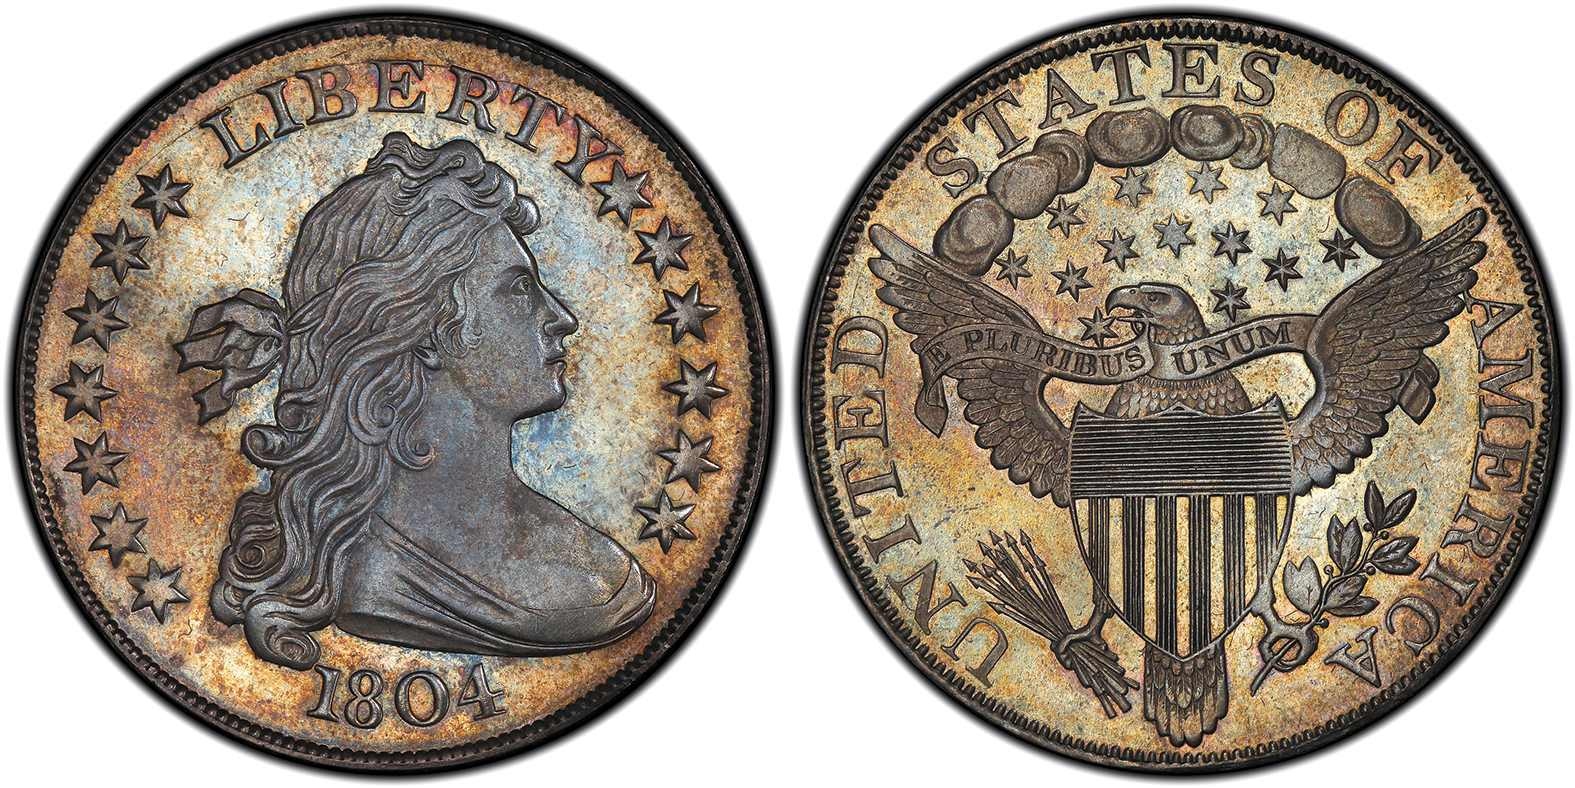 Beverly Hills Collector Buys Rare Coin For 3 29 Million